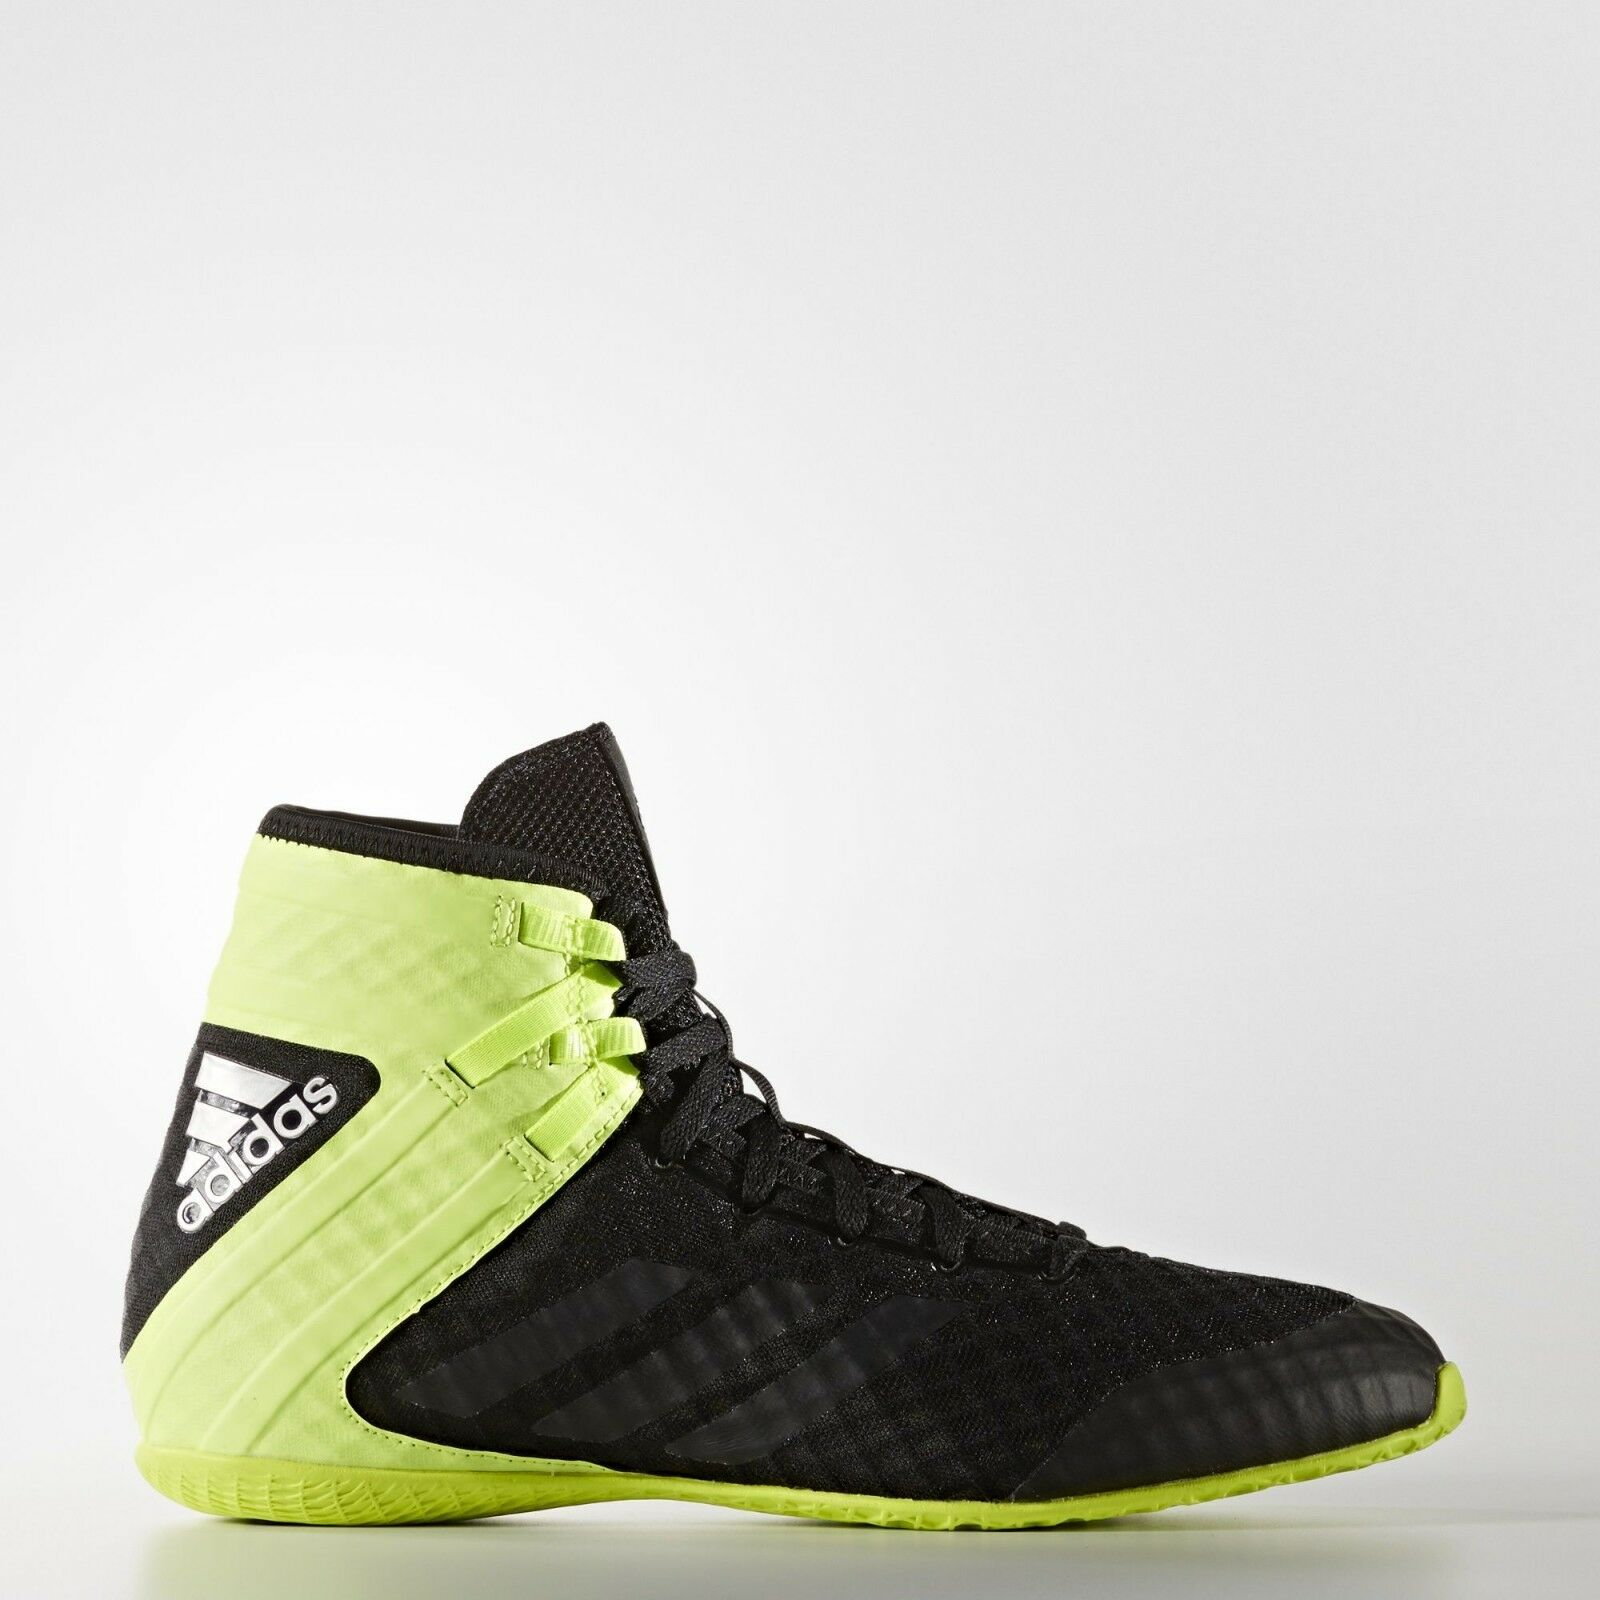 adidas Speedex 16.1 Mens Boxing Boots Pro Sports Lace Up Light Weight Trainers